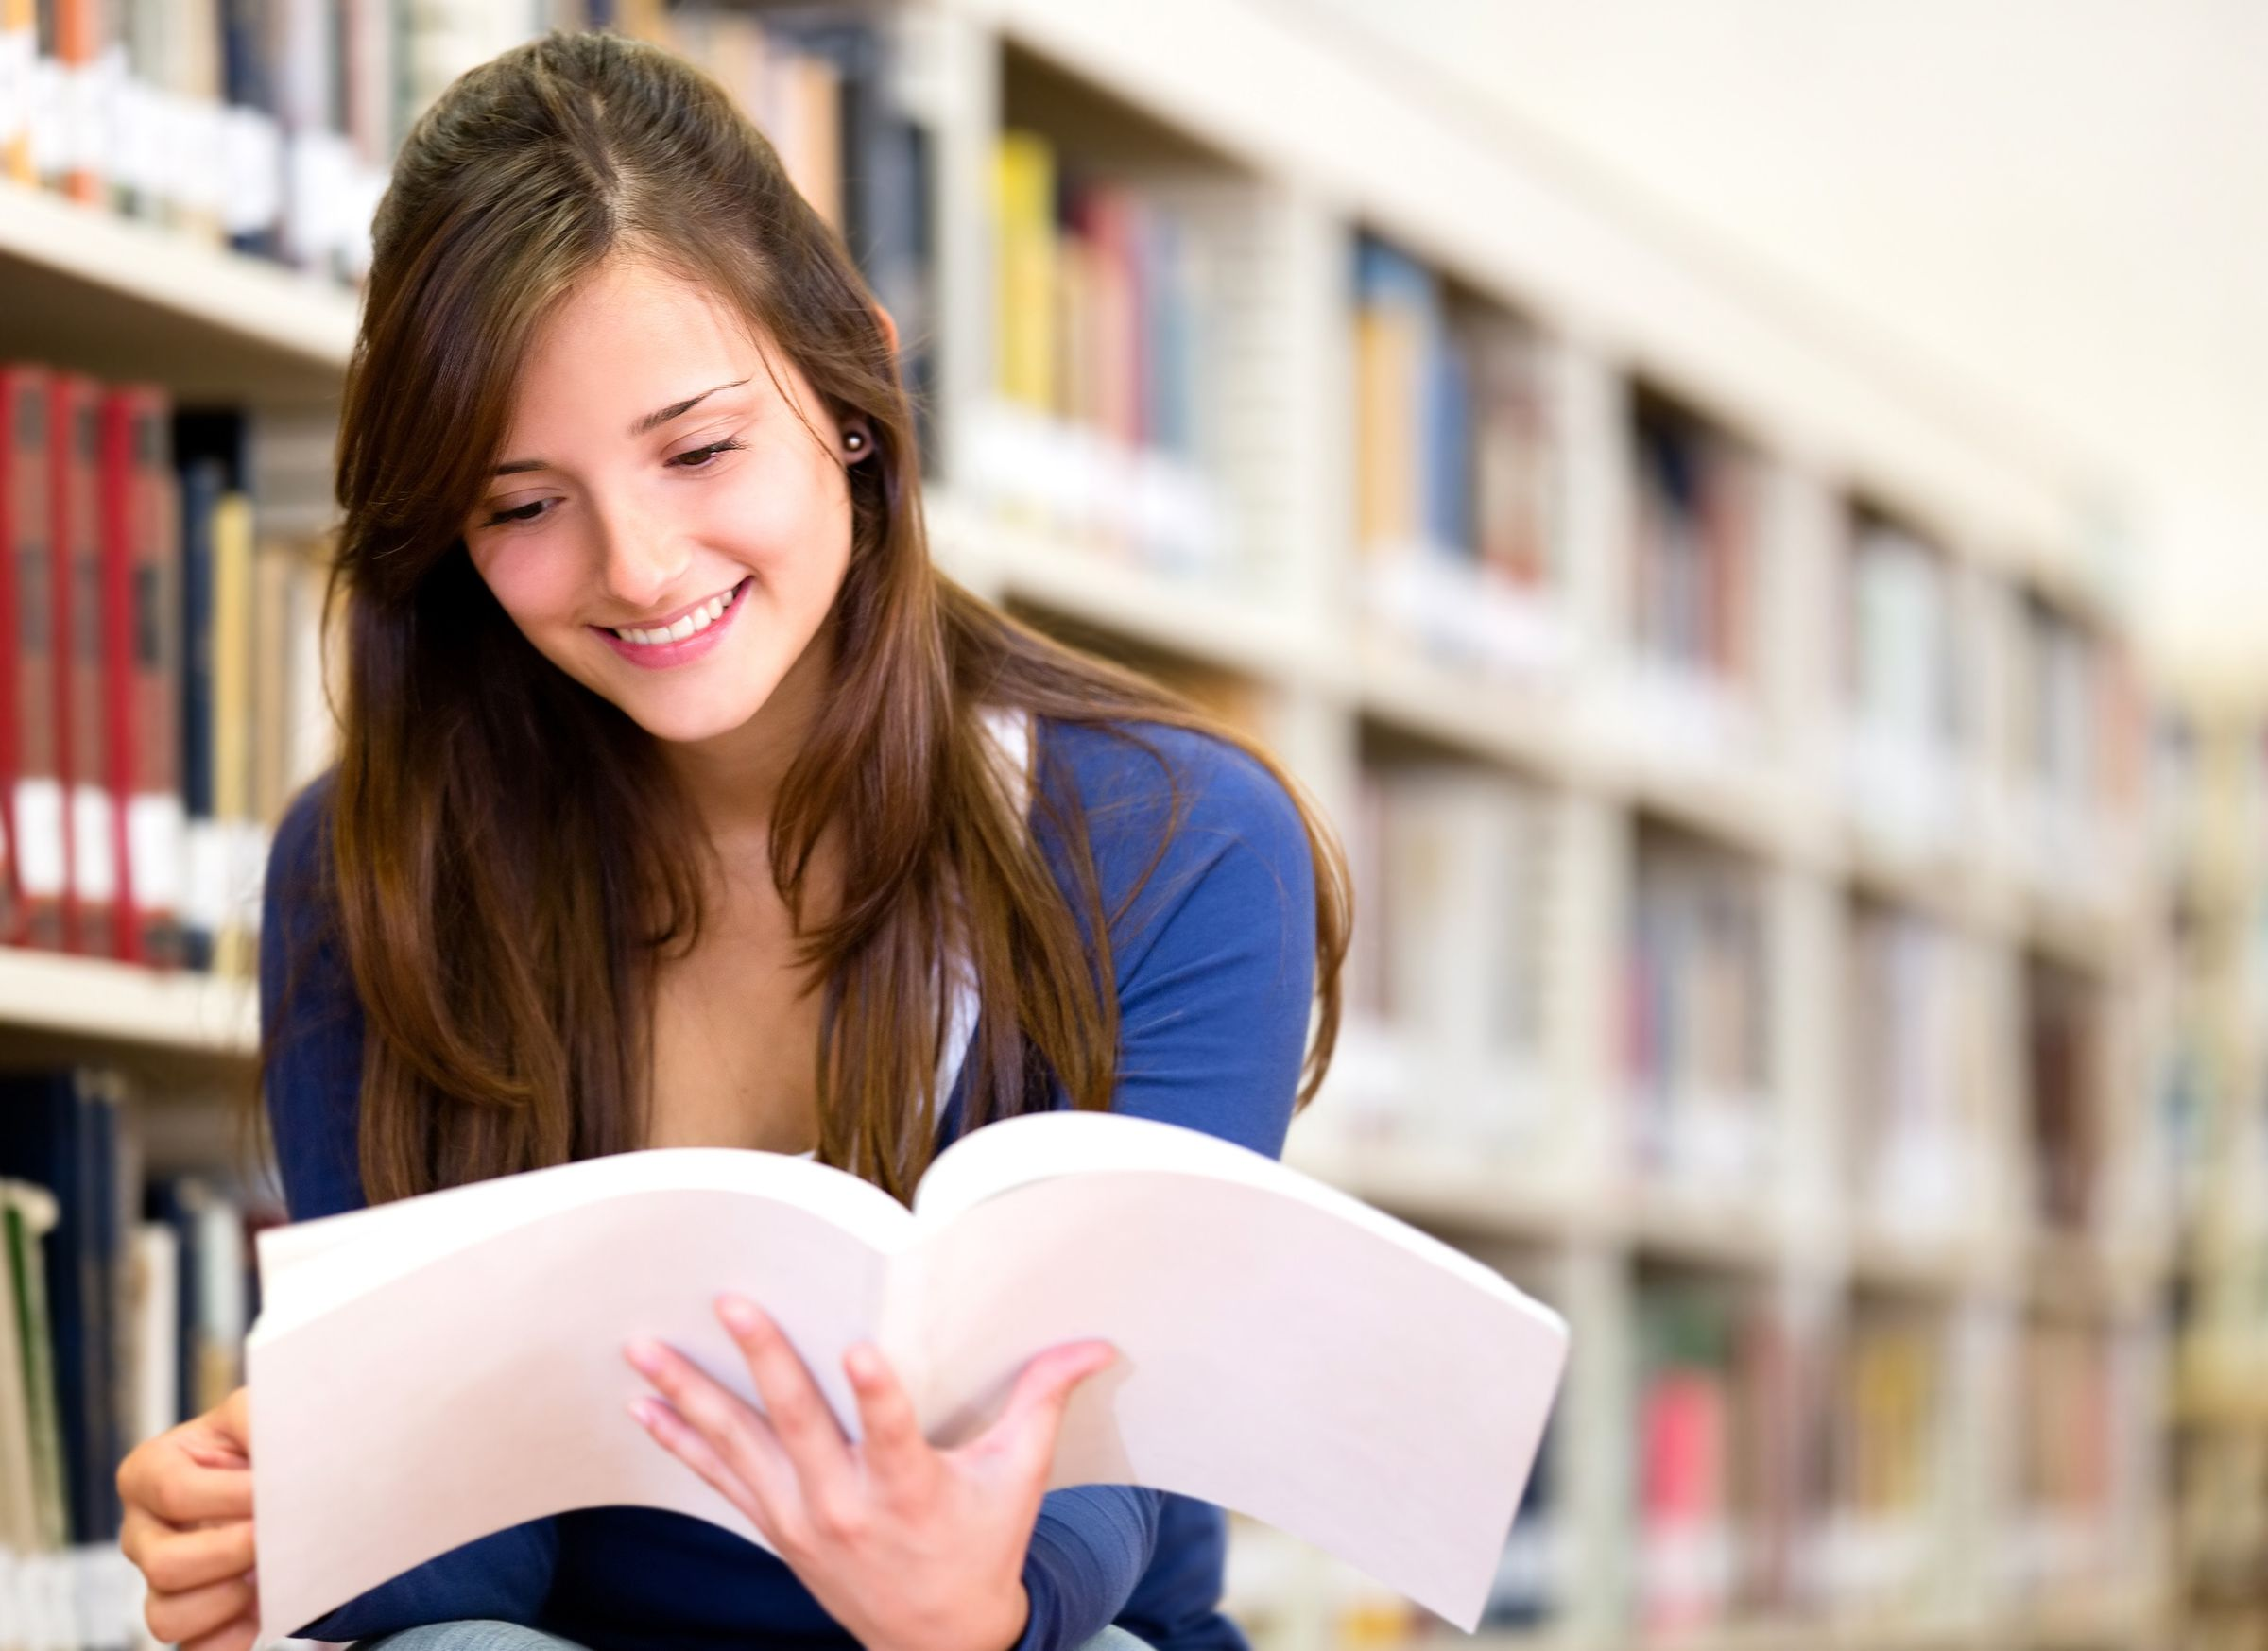 english language problems experienced by overseas students in australia essay